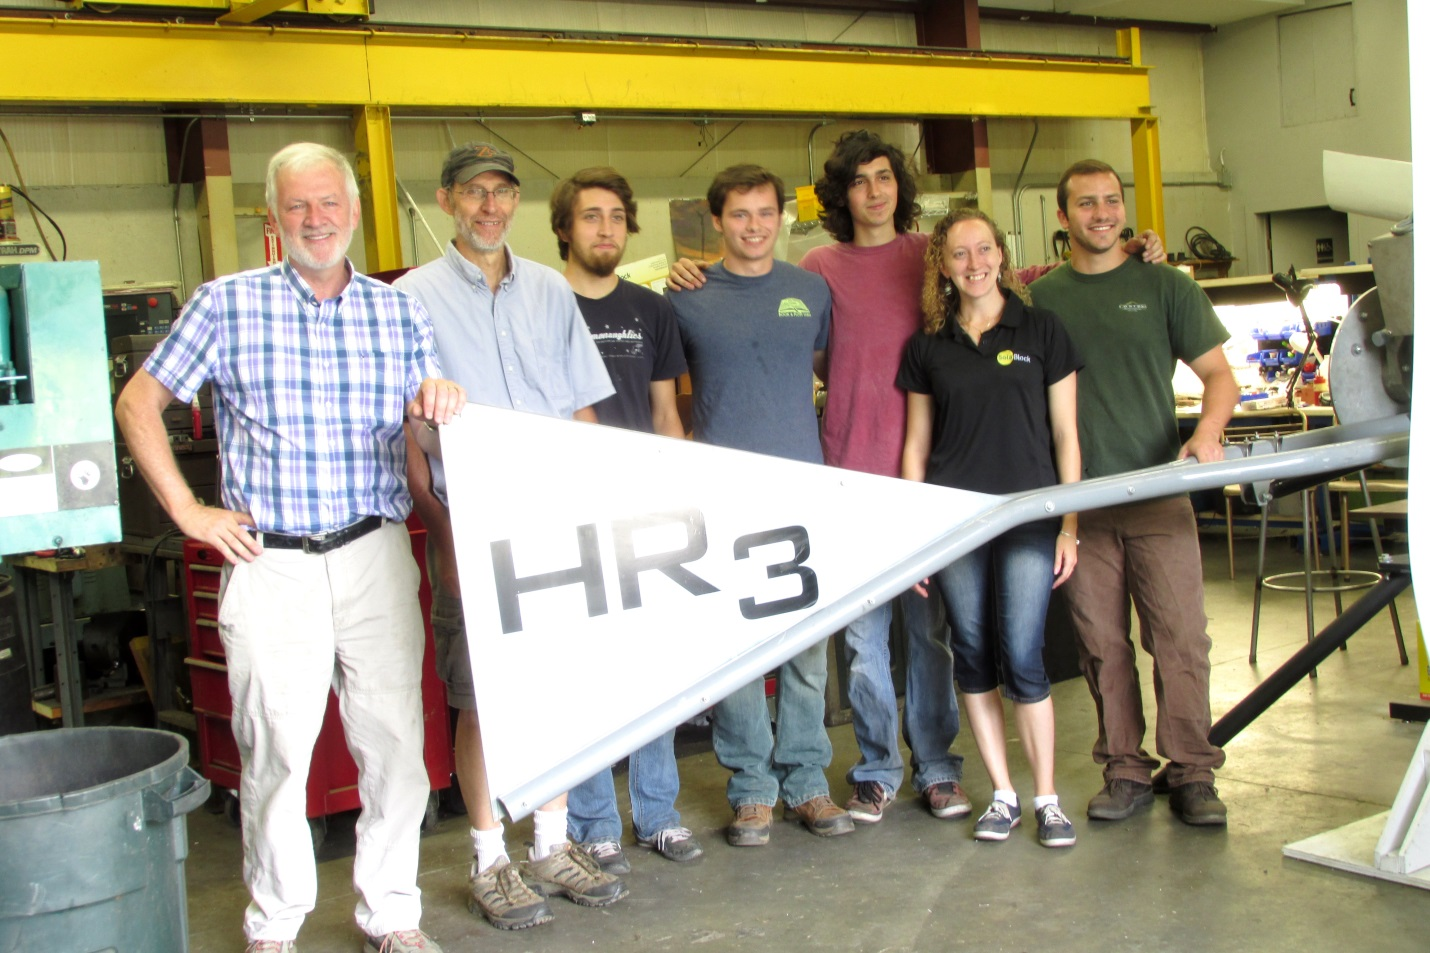 The staff of Black Island Wind Turbine poses with their turbine blade.